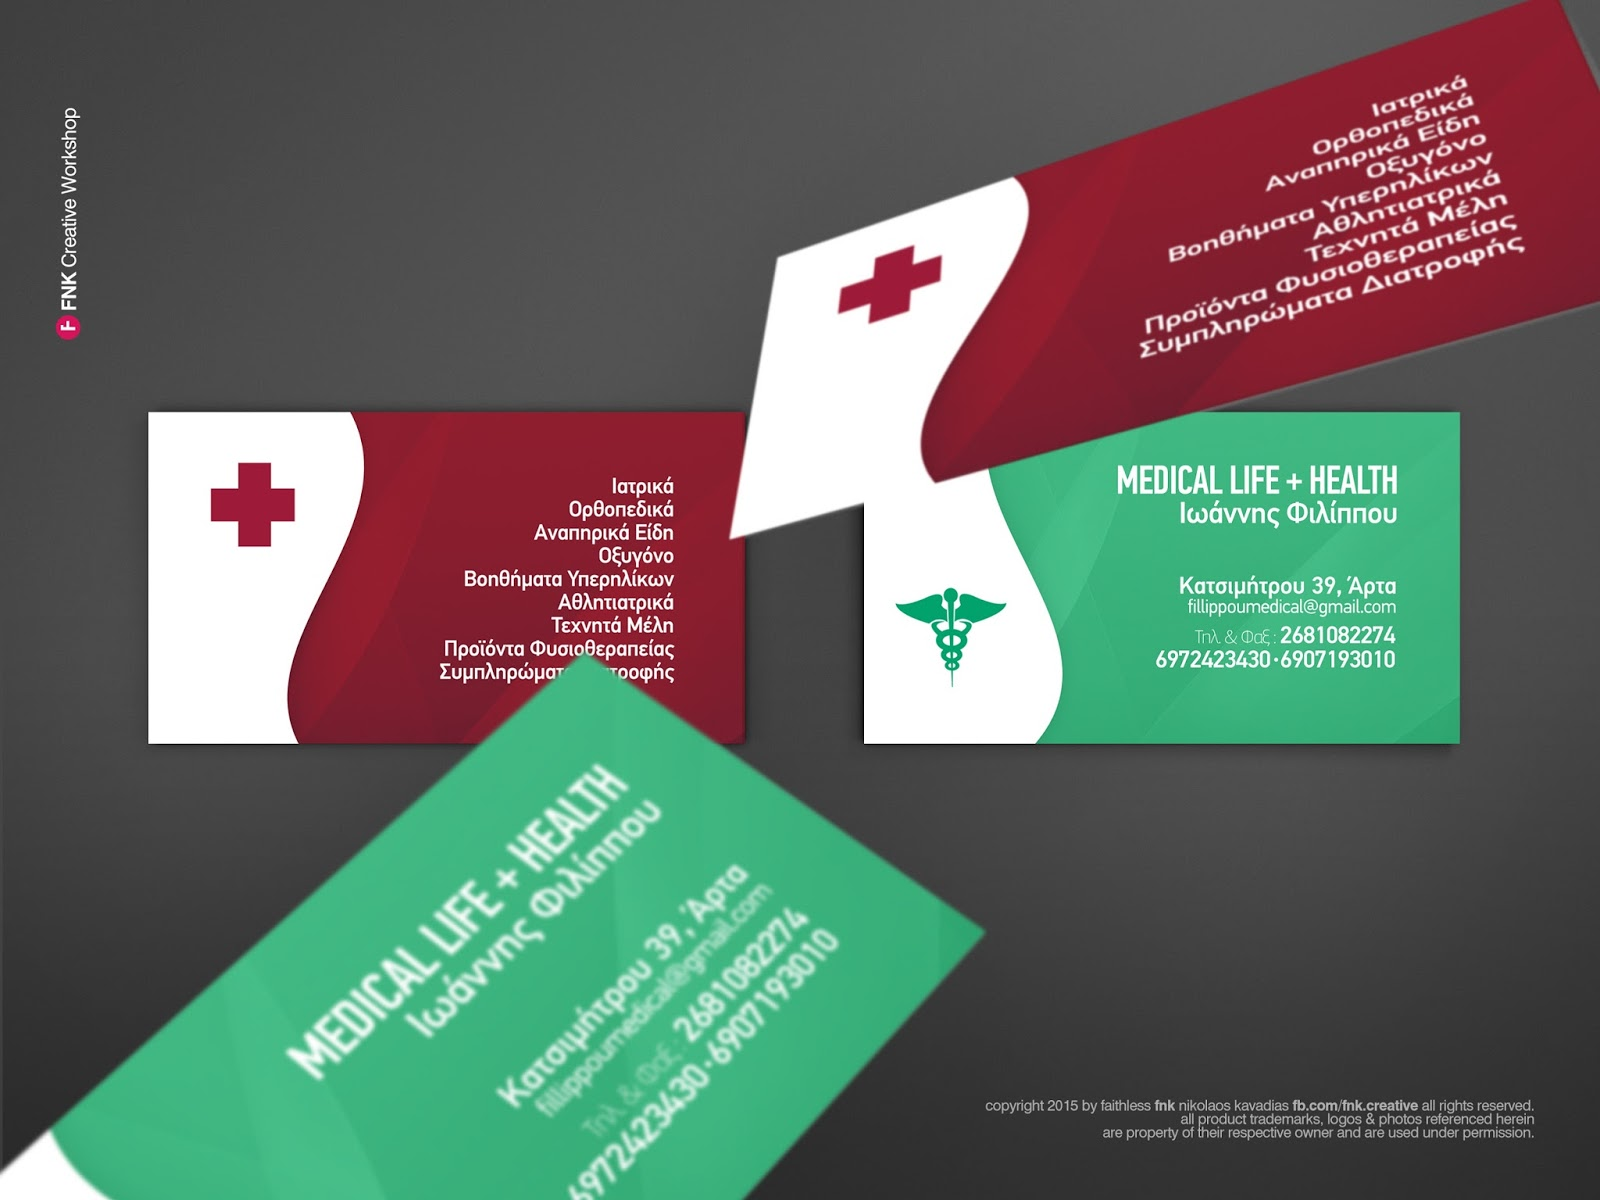 medical life + health (business card) - fnk